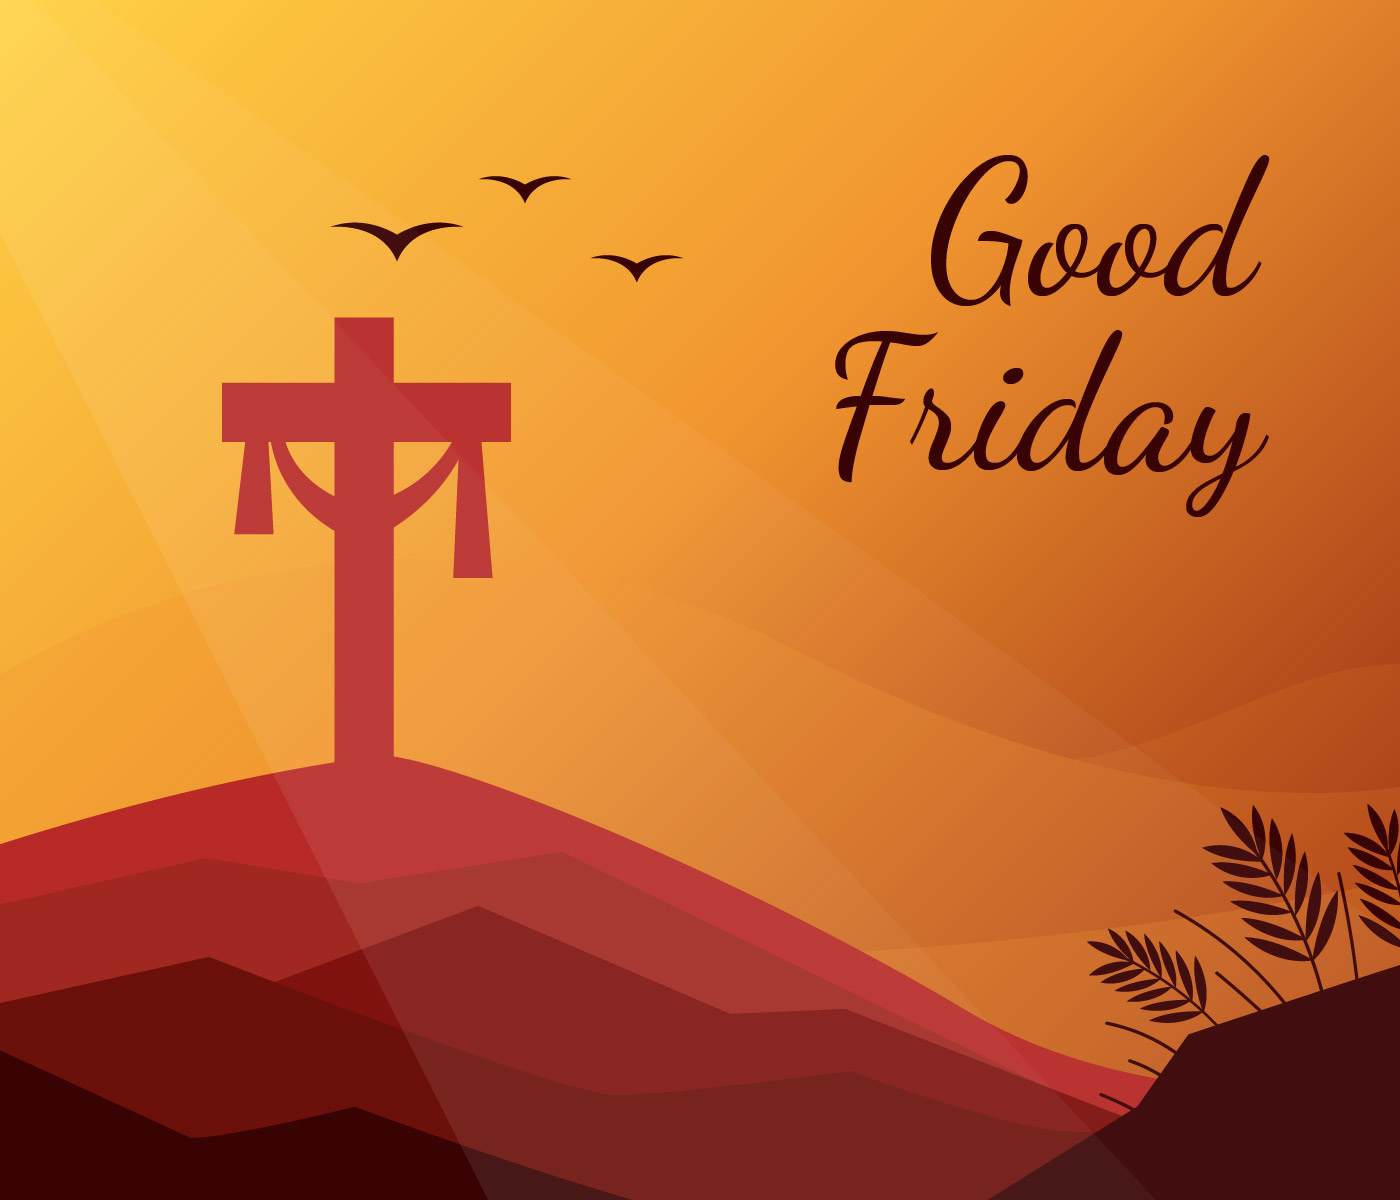 Hd Good Afternoon Wallpaper Good Friday Pictures Hd Wallpapers 2019 Good Friday New